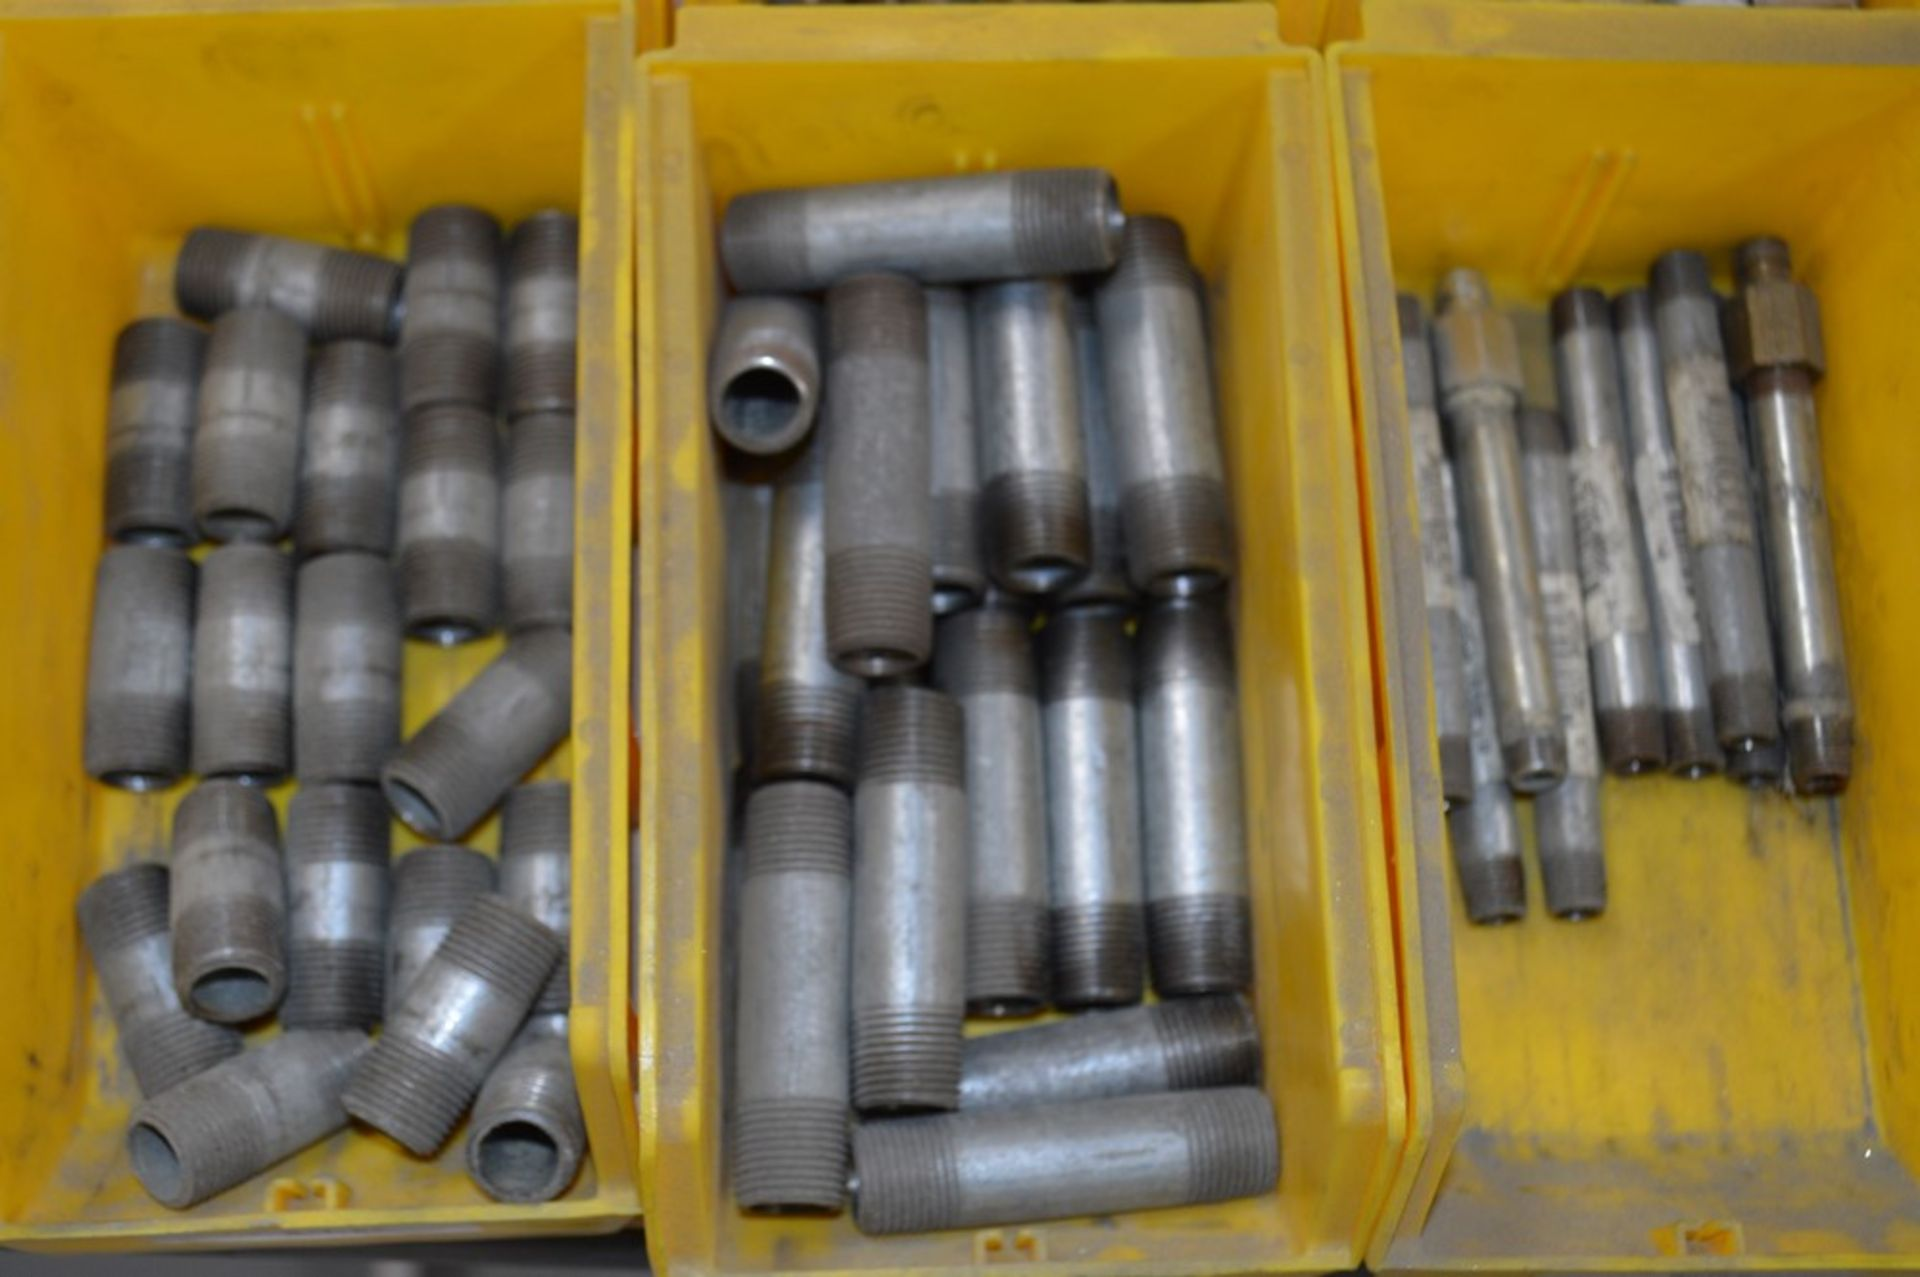 Large assortment of dual threaded joiners, air valves, 12 yellow parts boxes included - Image 5 of 5